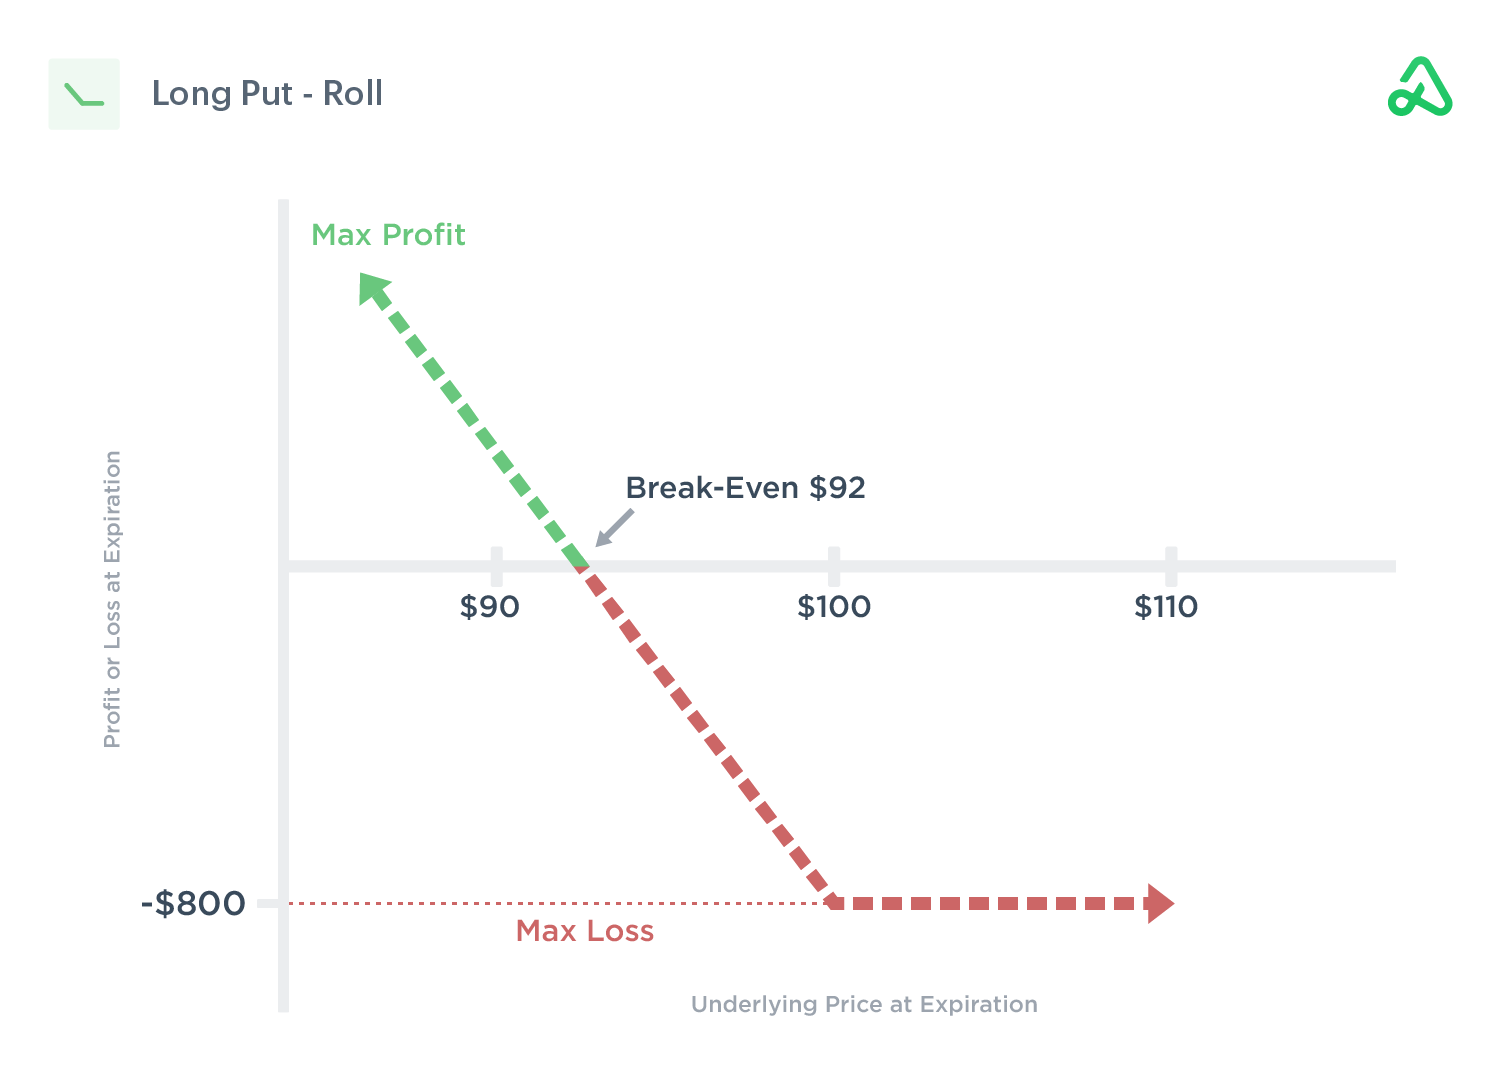 Payoff diagram of a long put roll out for a debit